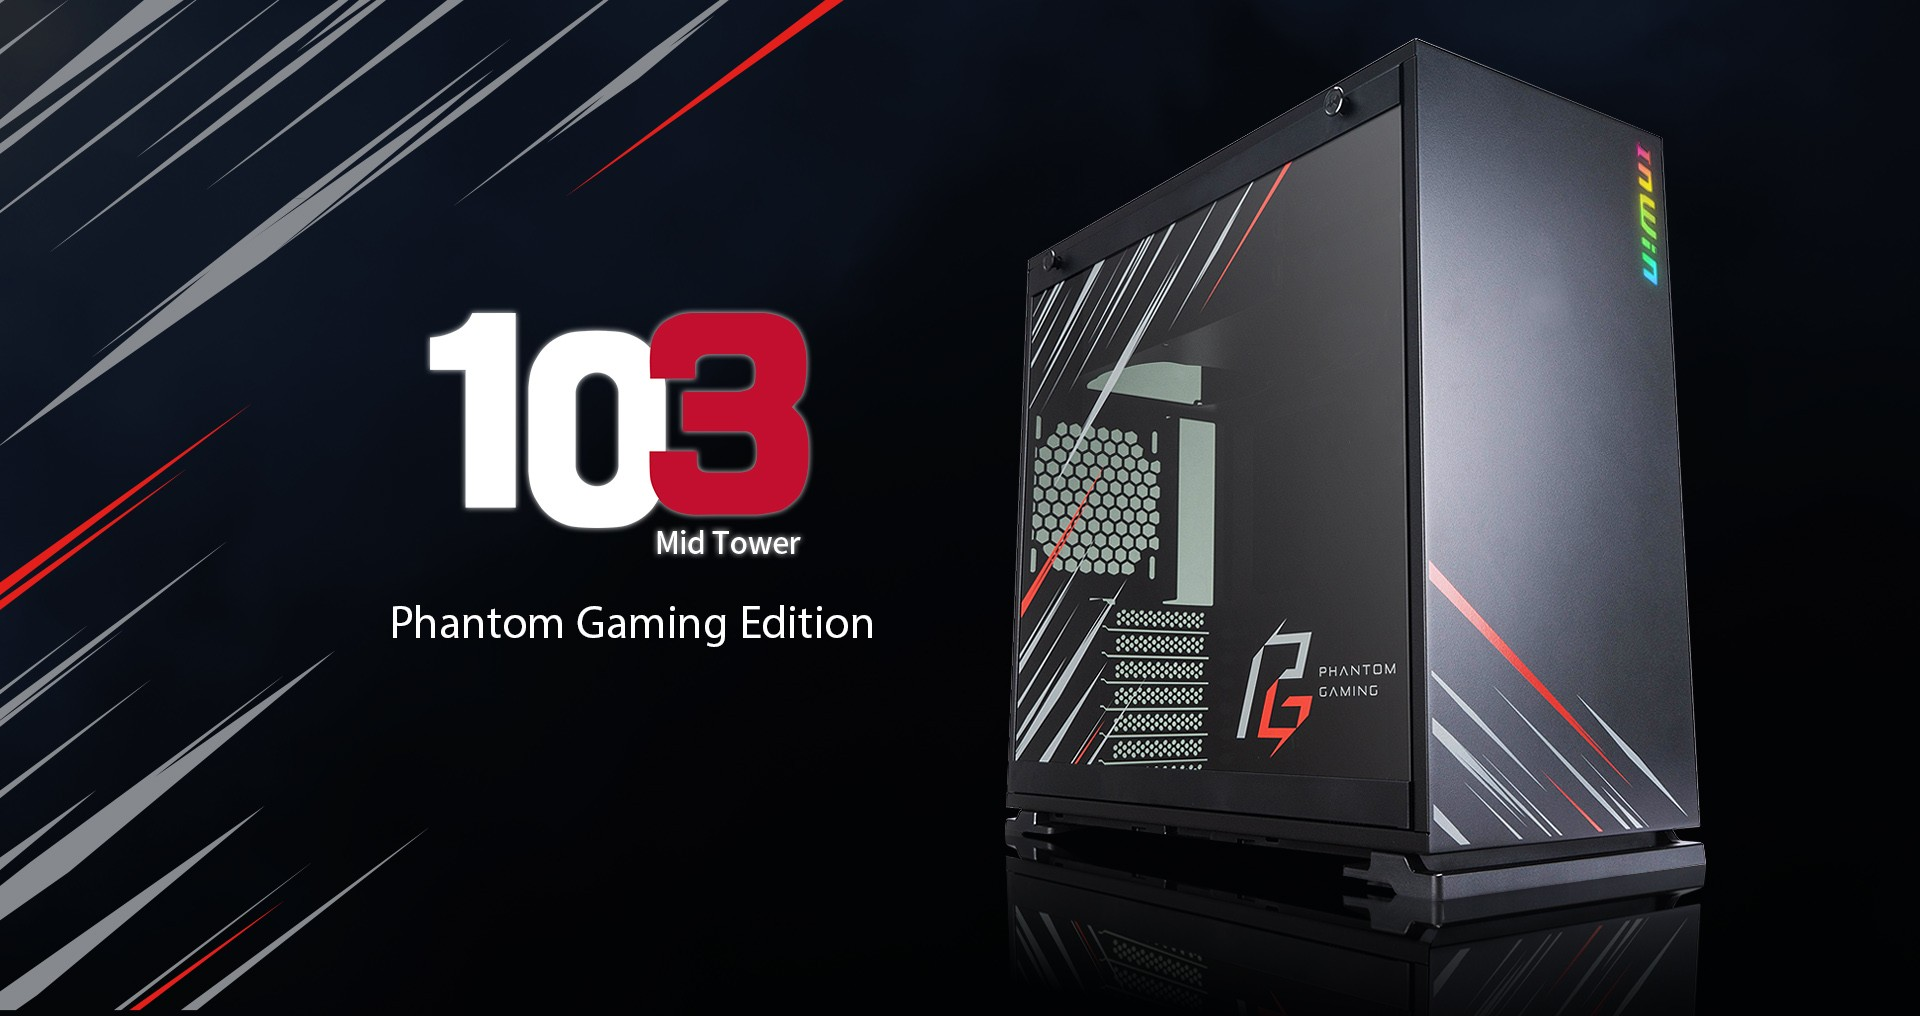 103 Phantom Gaming Edition